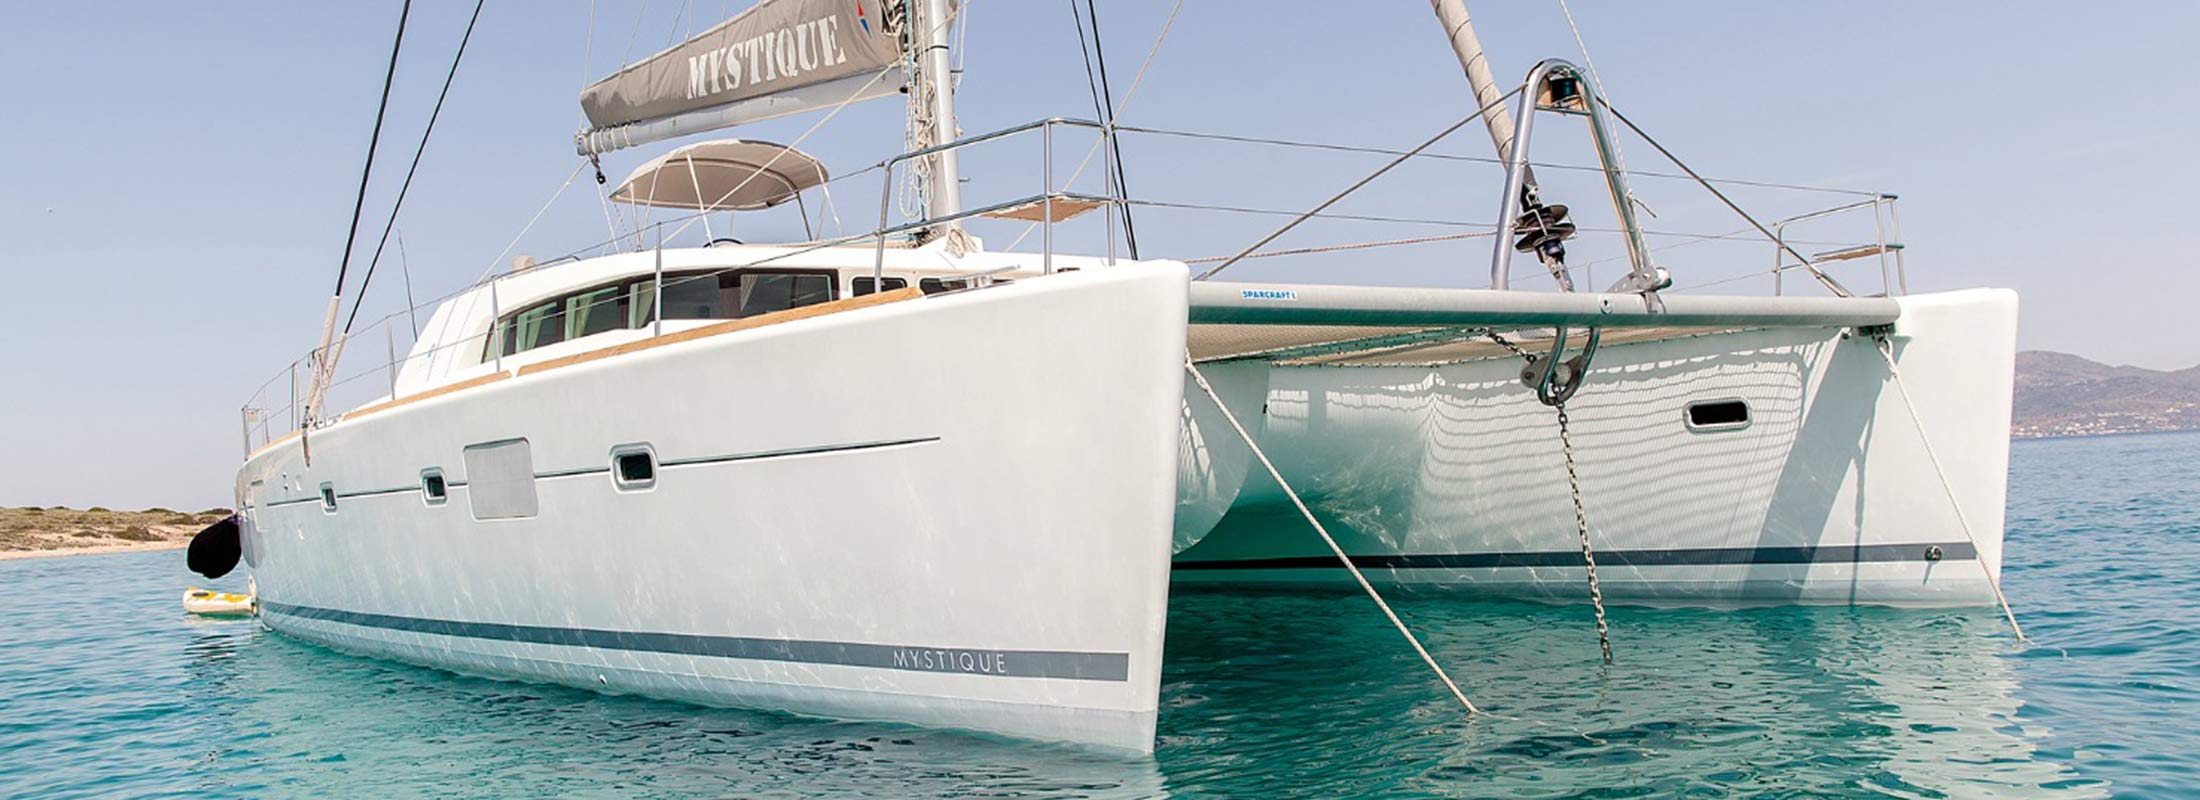 Mystique Sailing Yacht for Charter Mediterranean slider 2